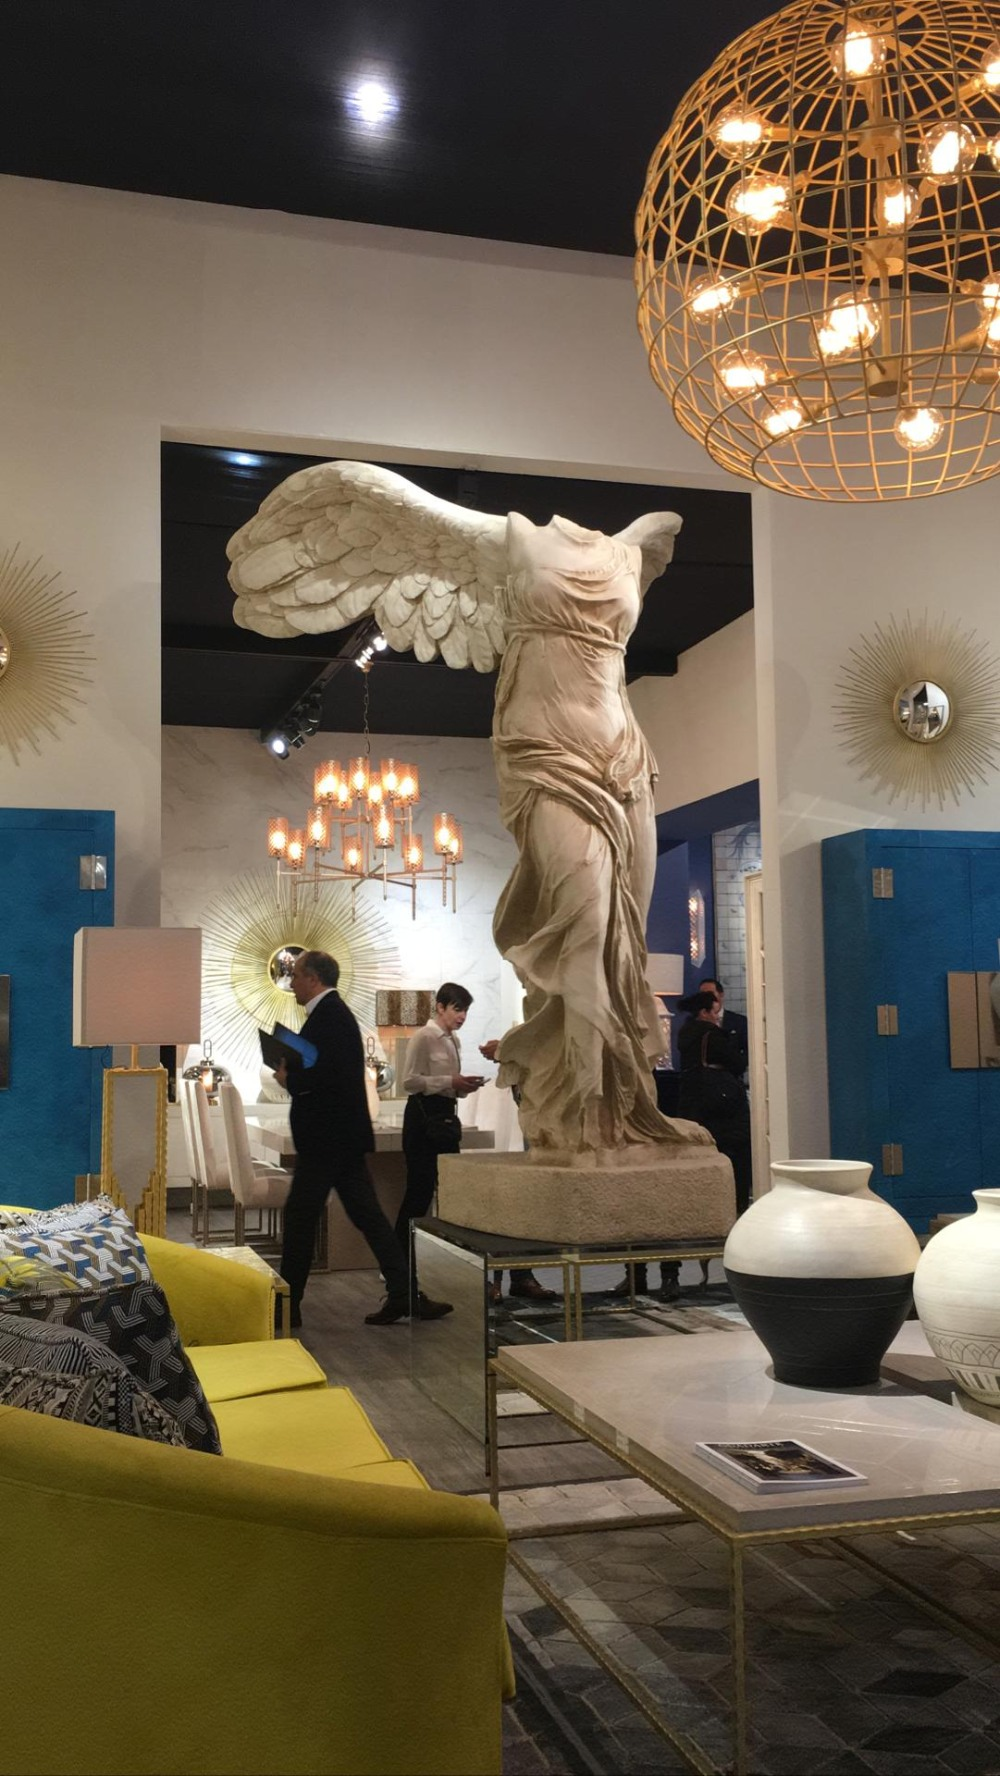 Feast Your Eyes to the Best Moments of Maison et Objet 2020 40 (1) maison et objet 2020 Feast Your Eyes to the Best Moments of Maison et Objet 2020 Feast Your Eyes to the Best Moments of Maison et Objet 2020 40 1